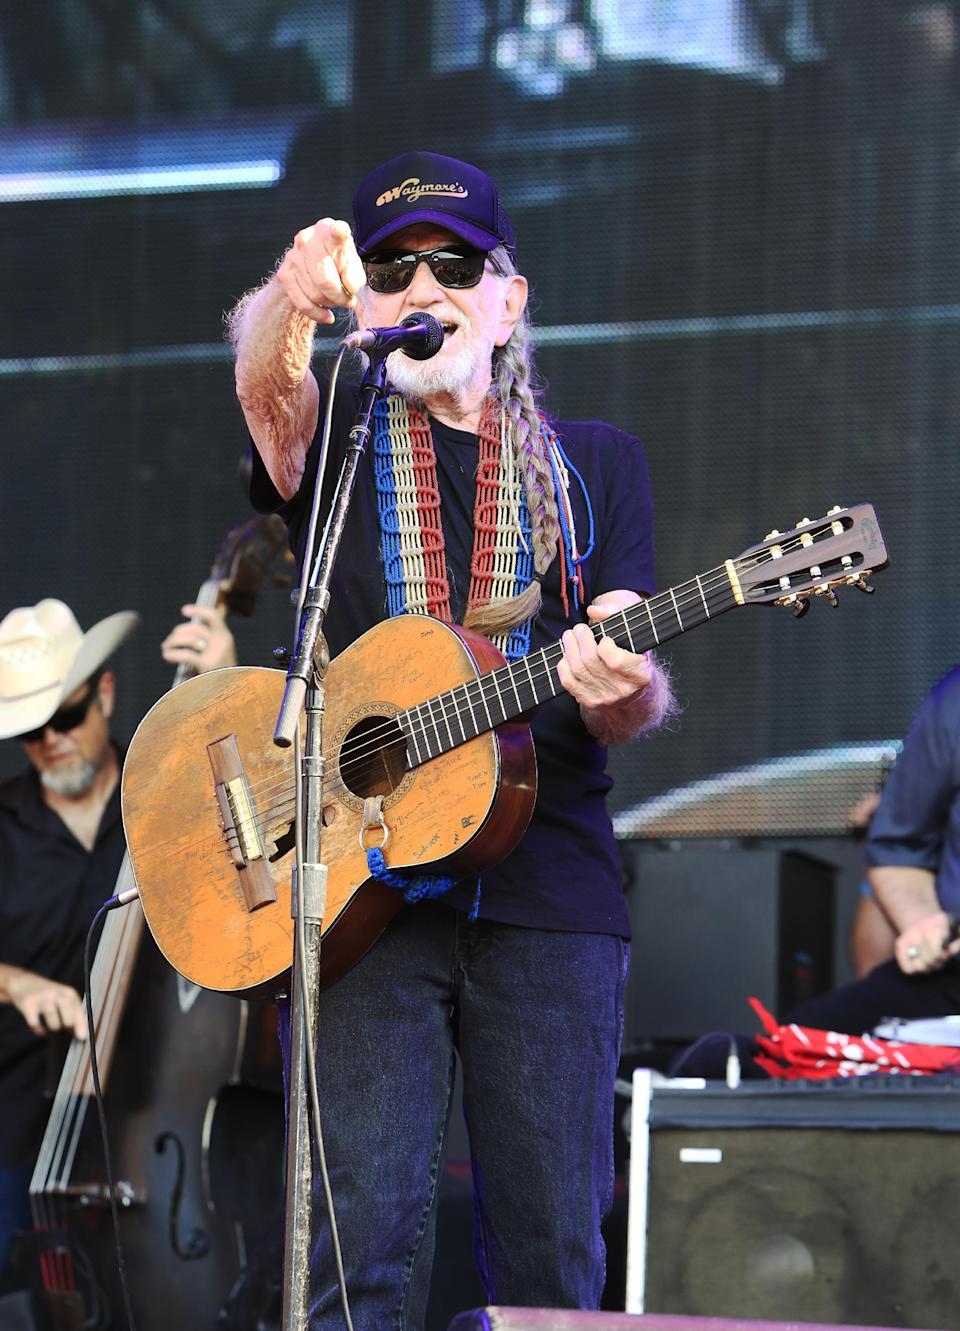 Willie Nelson performs at the Oklahoma Twister Relief Concert at the Gaylord Family-Oklahoma Memorial Stadium on Saturday, July 6, 2013 in Norman, Okla. (Photo by Alonzo Adams/Invision/AP)